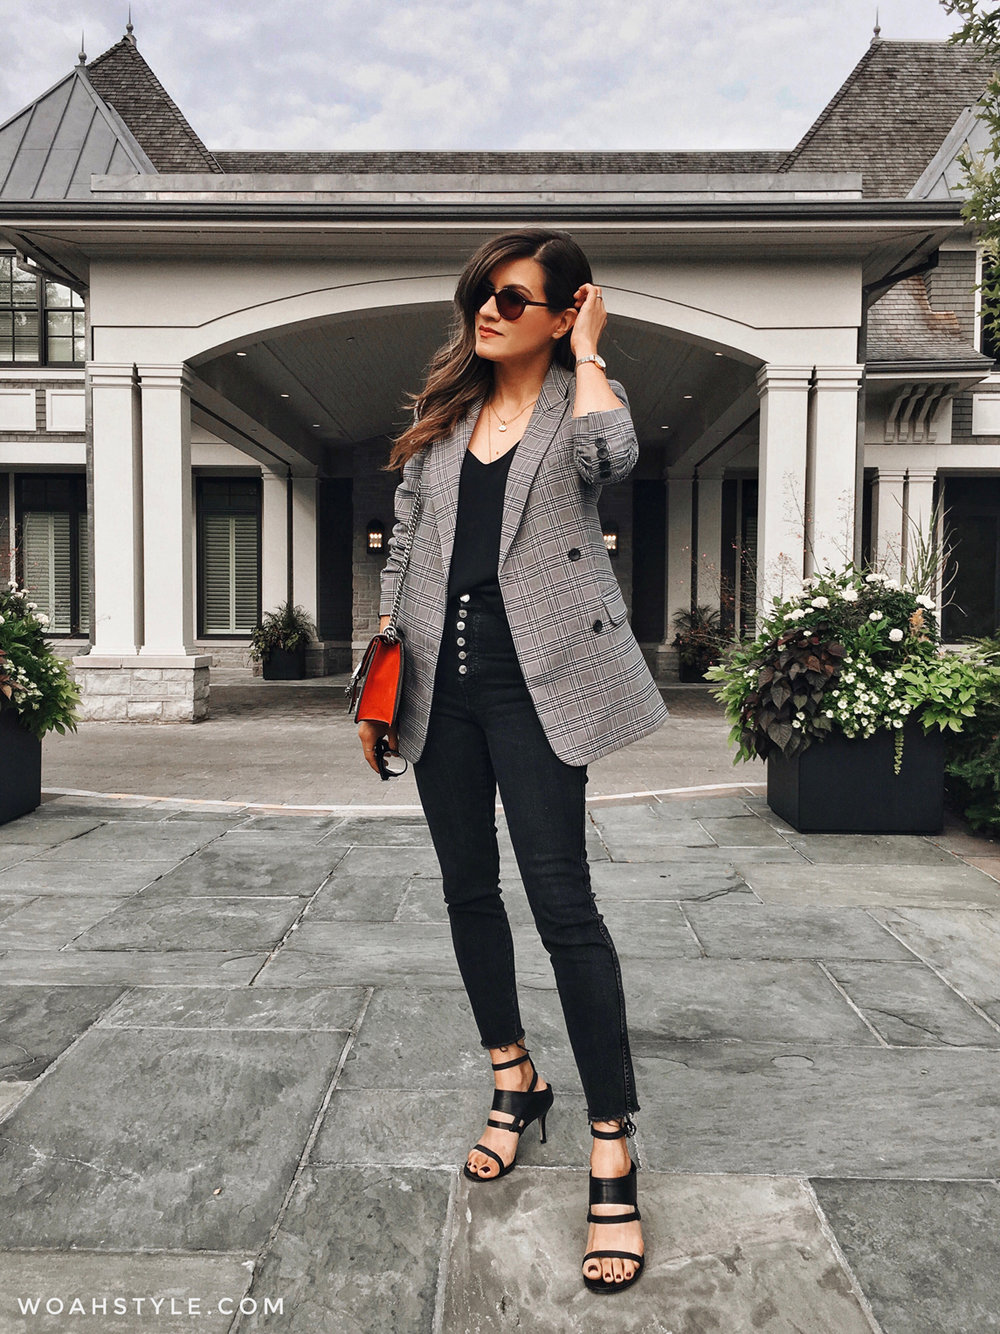 Wearing Zara jeans from SS18 (probably the last I'll buy from the brand), A Nordstrom blazer, Alexander Wang sandals from 5 years ago, a Reitmans cami, and Gucci bag.